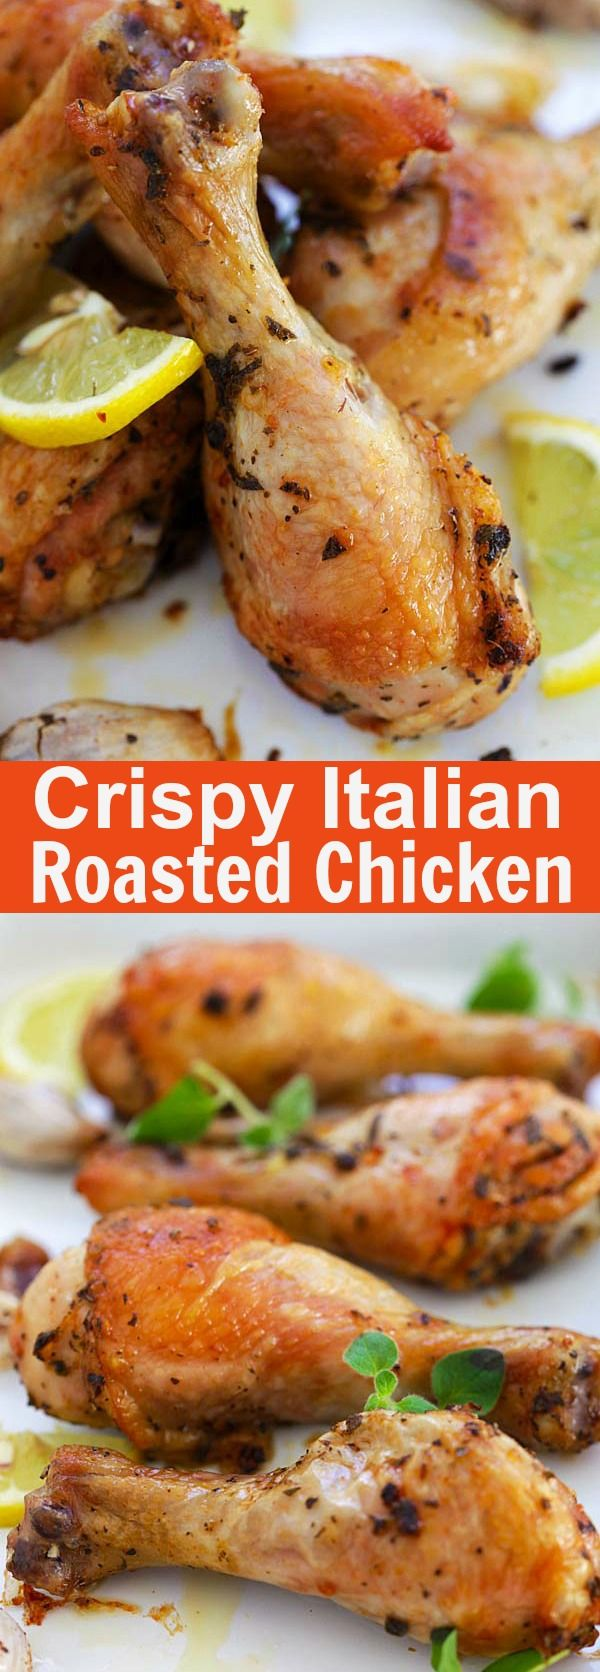 Italian Roasted Chicken - roasted chicken drumsticks marinated with Italian herbs and seasonings. Crispy, delicious and so easy to make | rasamalaysia.com